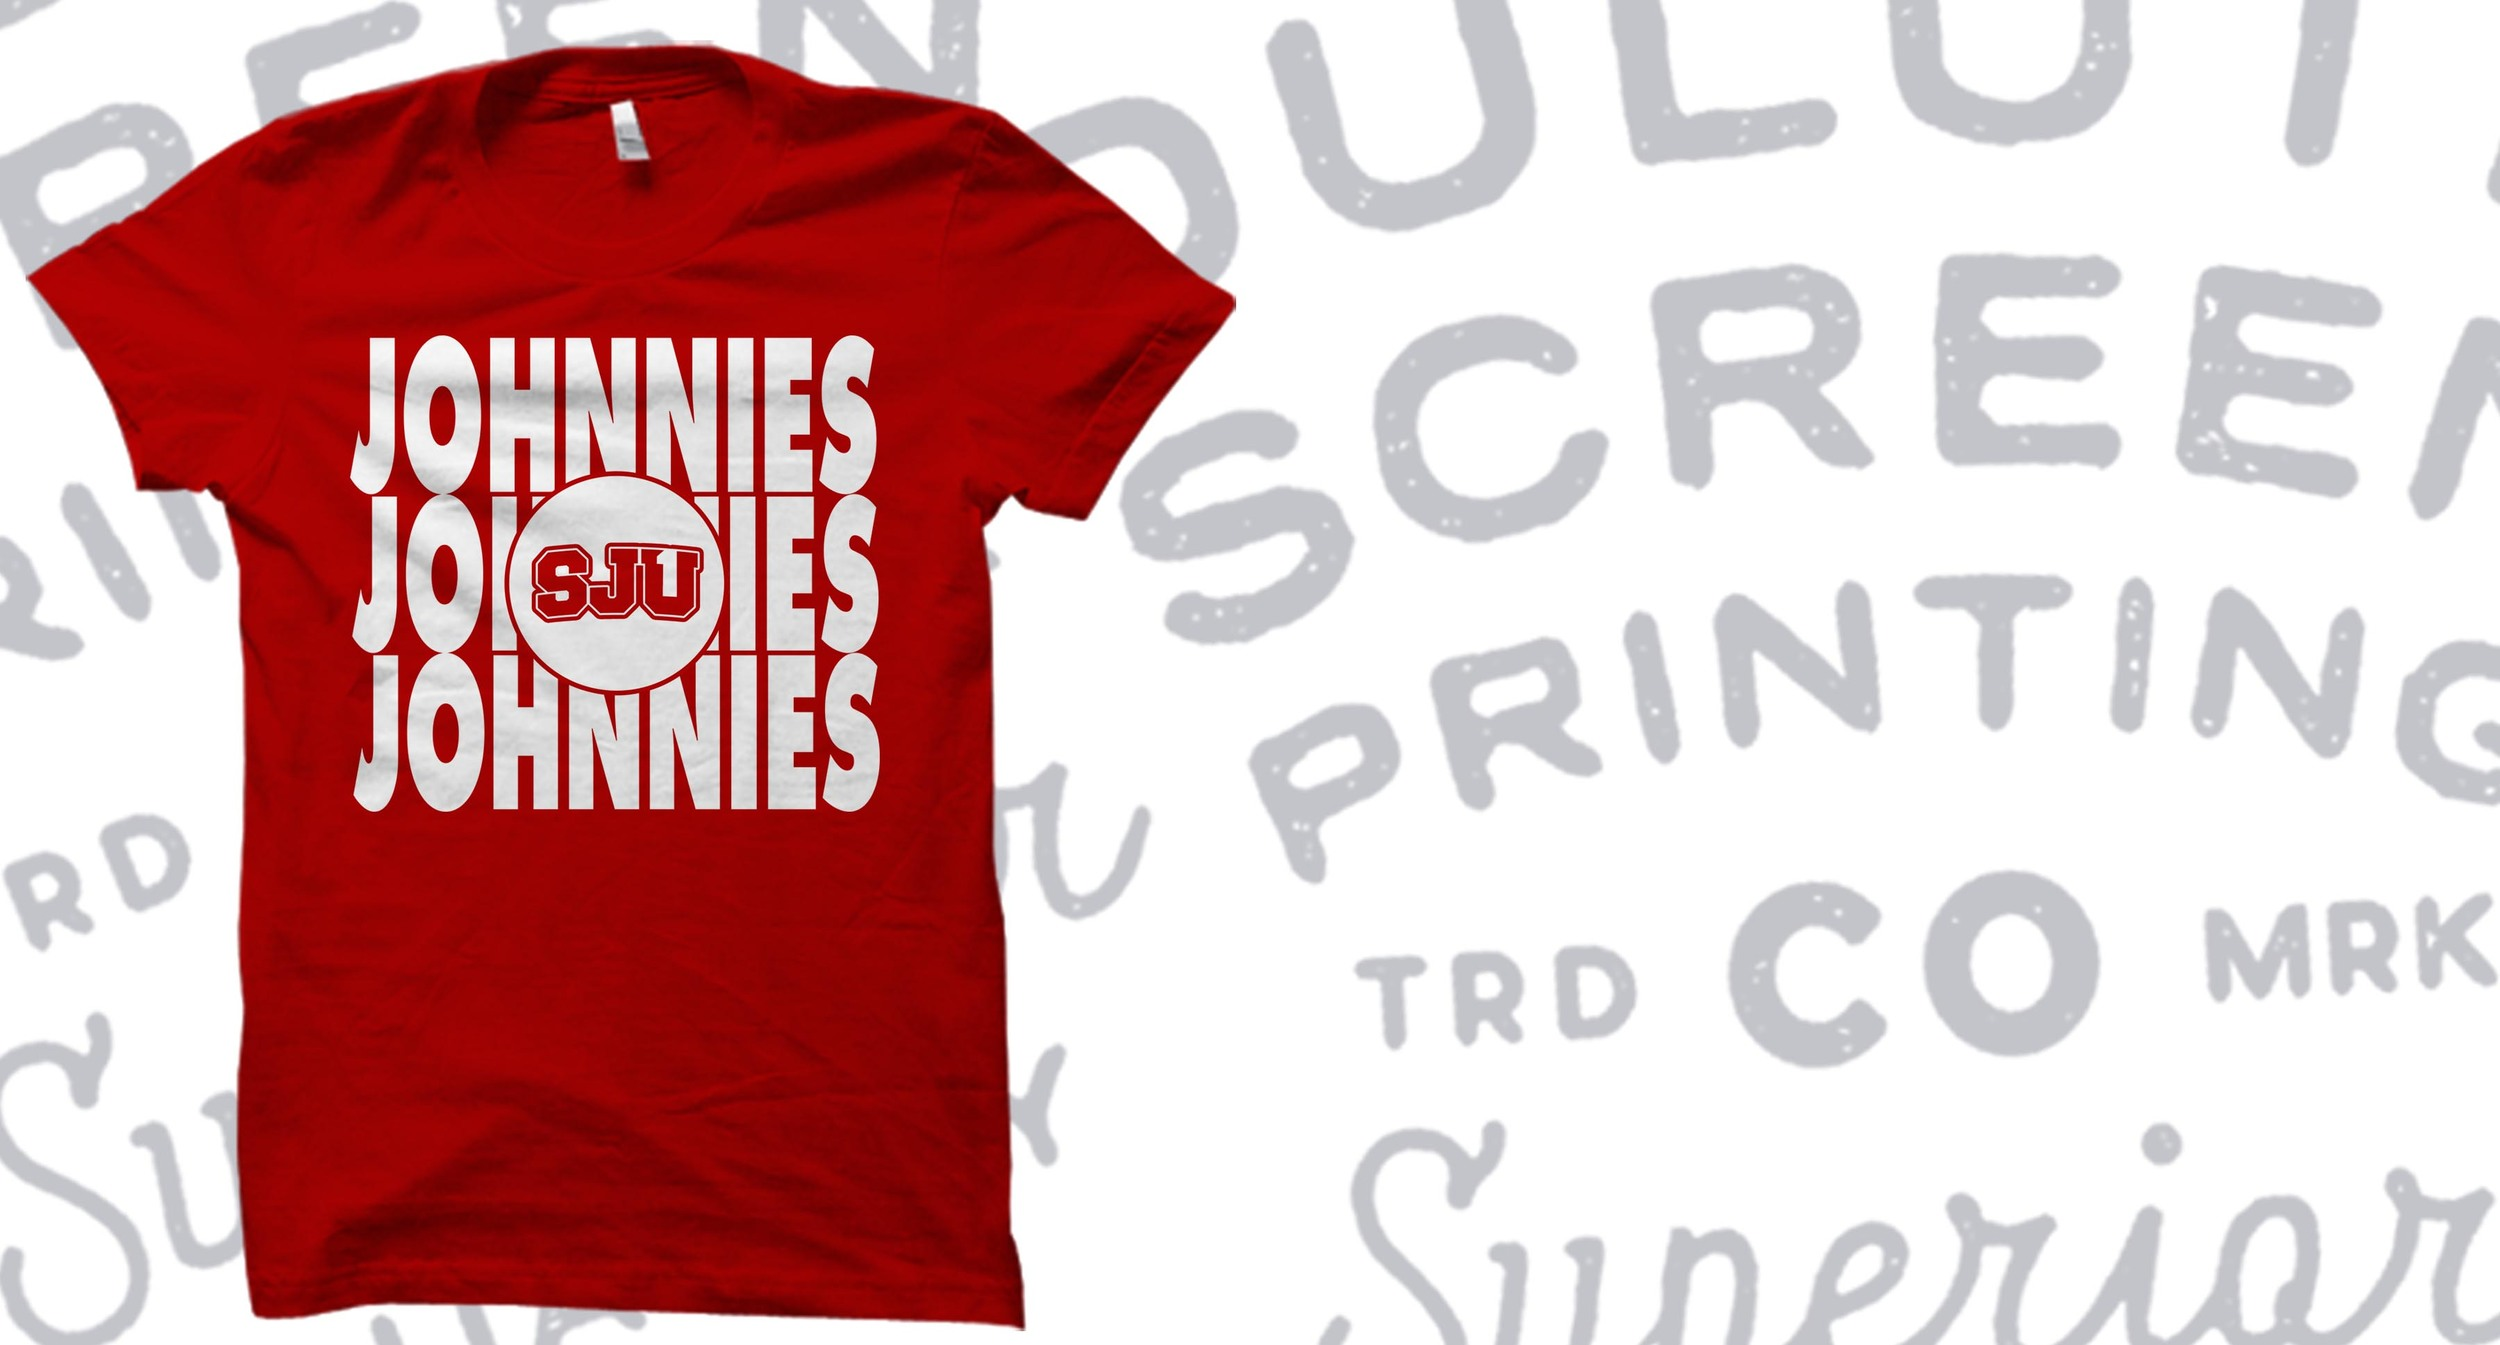 This is an example of our custom t-shirt work for the Saint John's Johnnies.